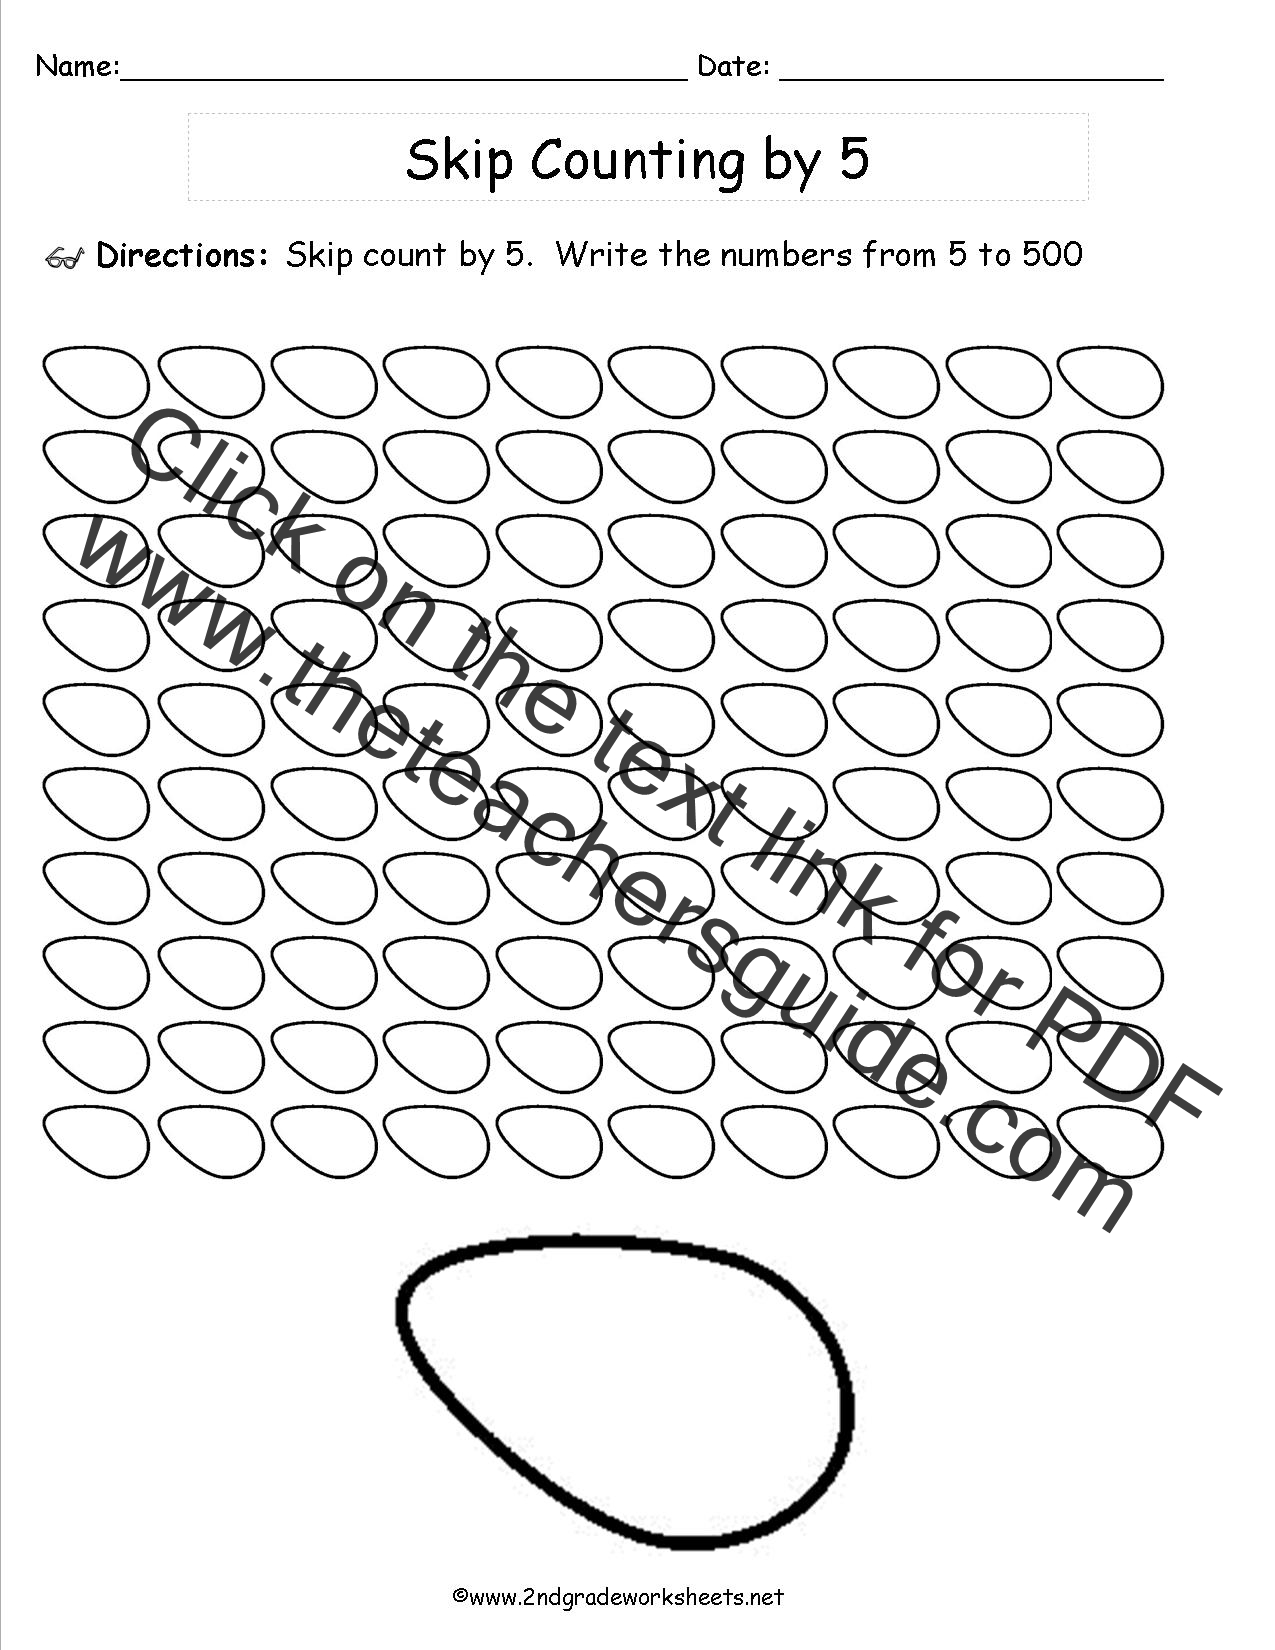 Uncategorized Easter Worksheets easter worksheets and printouts egg skip count by 5 worksheet